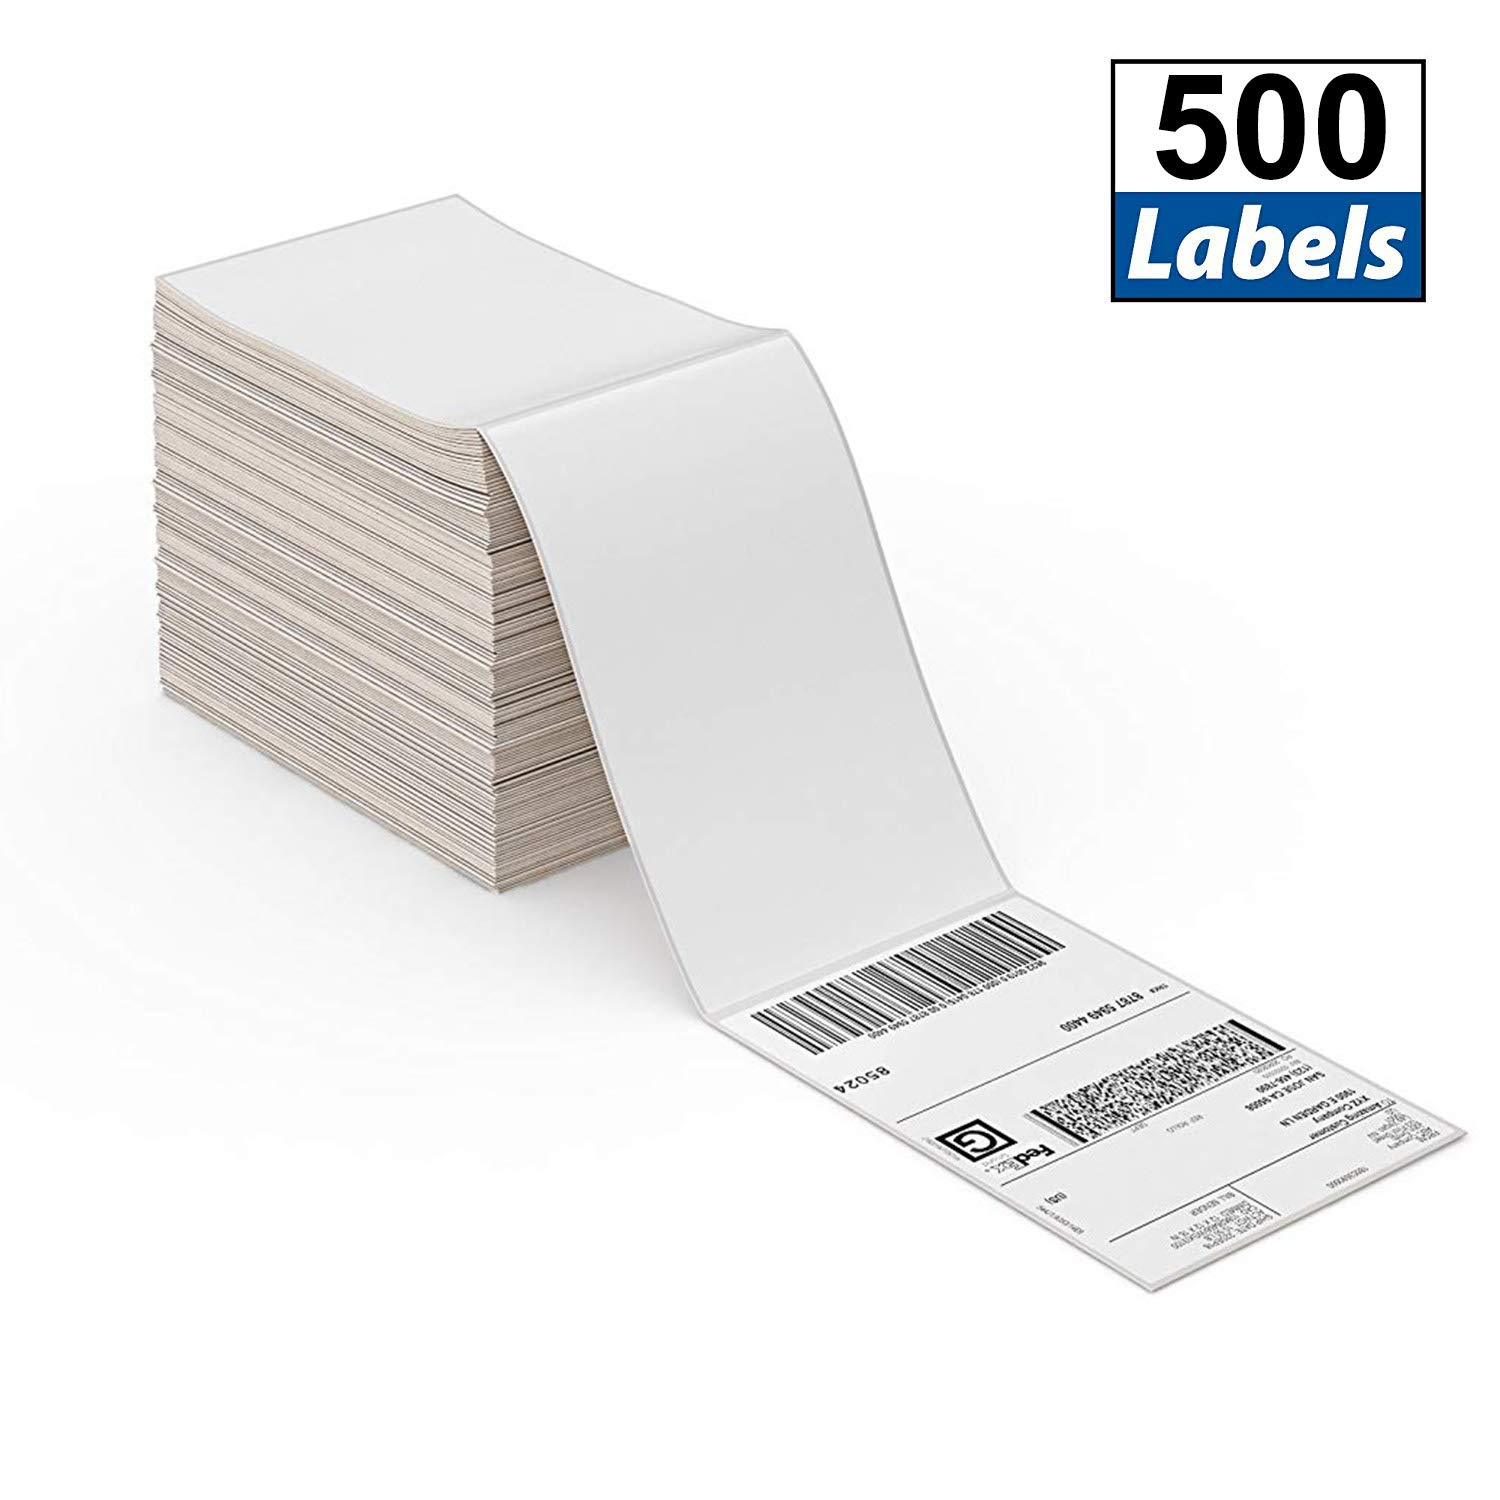 Commercial Grade MUNBYN 4x6 Direct Thermal Fanfold Shipping Labels 500 Pics for Address Mailing Postage USPS UPS FedEx  Ebay Shipping Labels